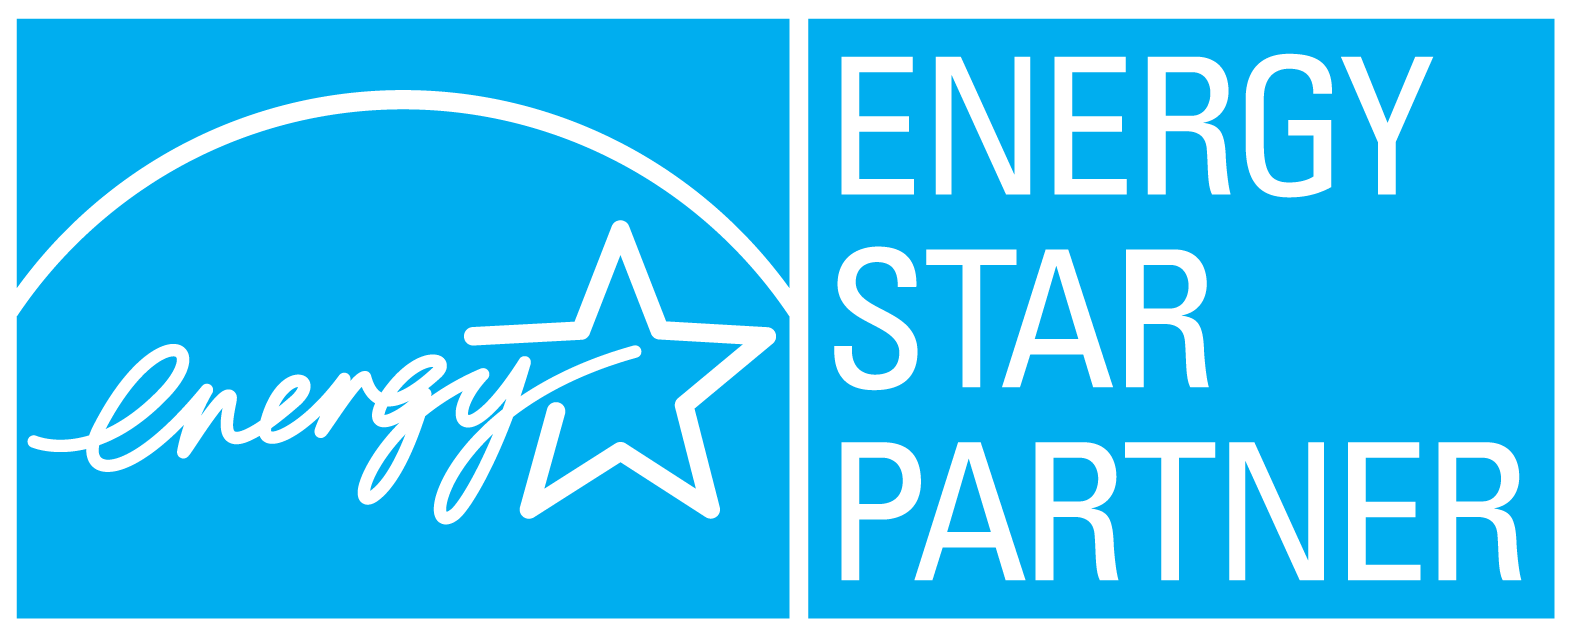 Energy Star Partnership